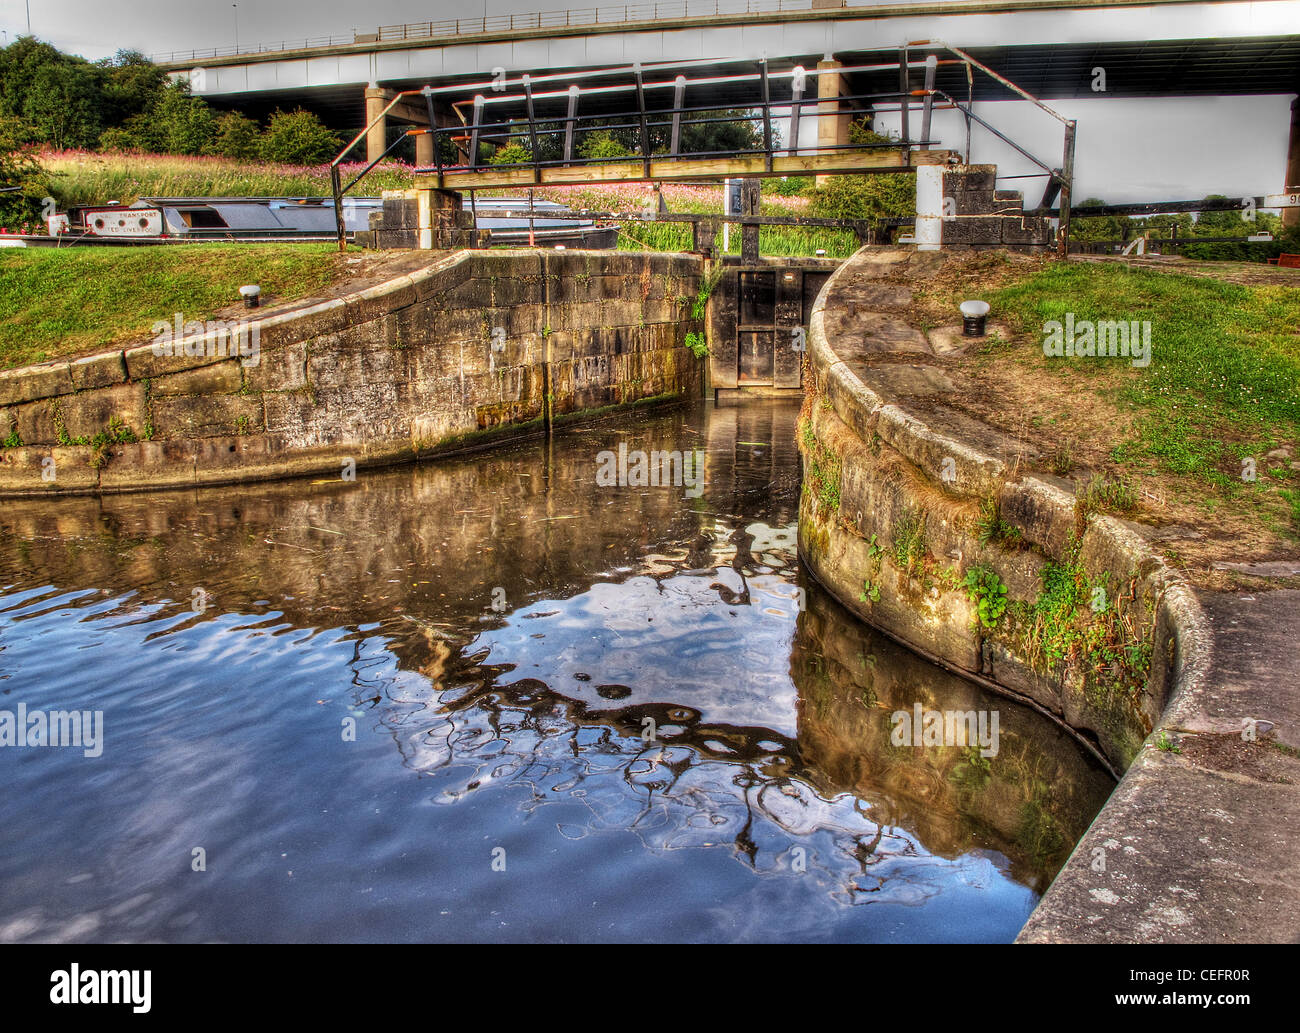 Canal Lock - Stock Image